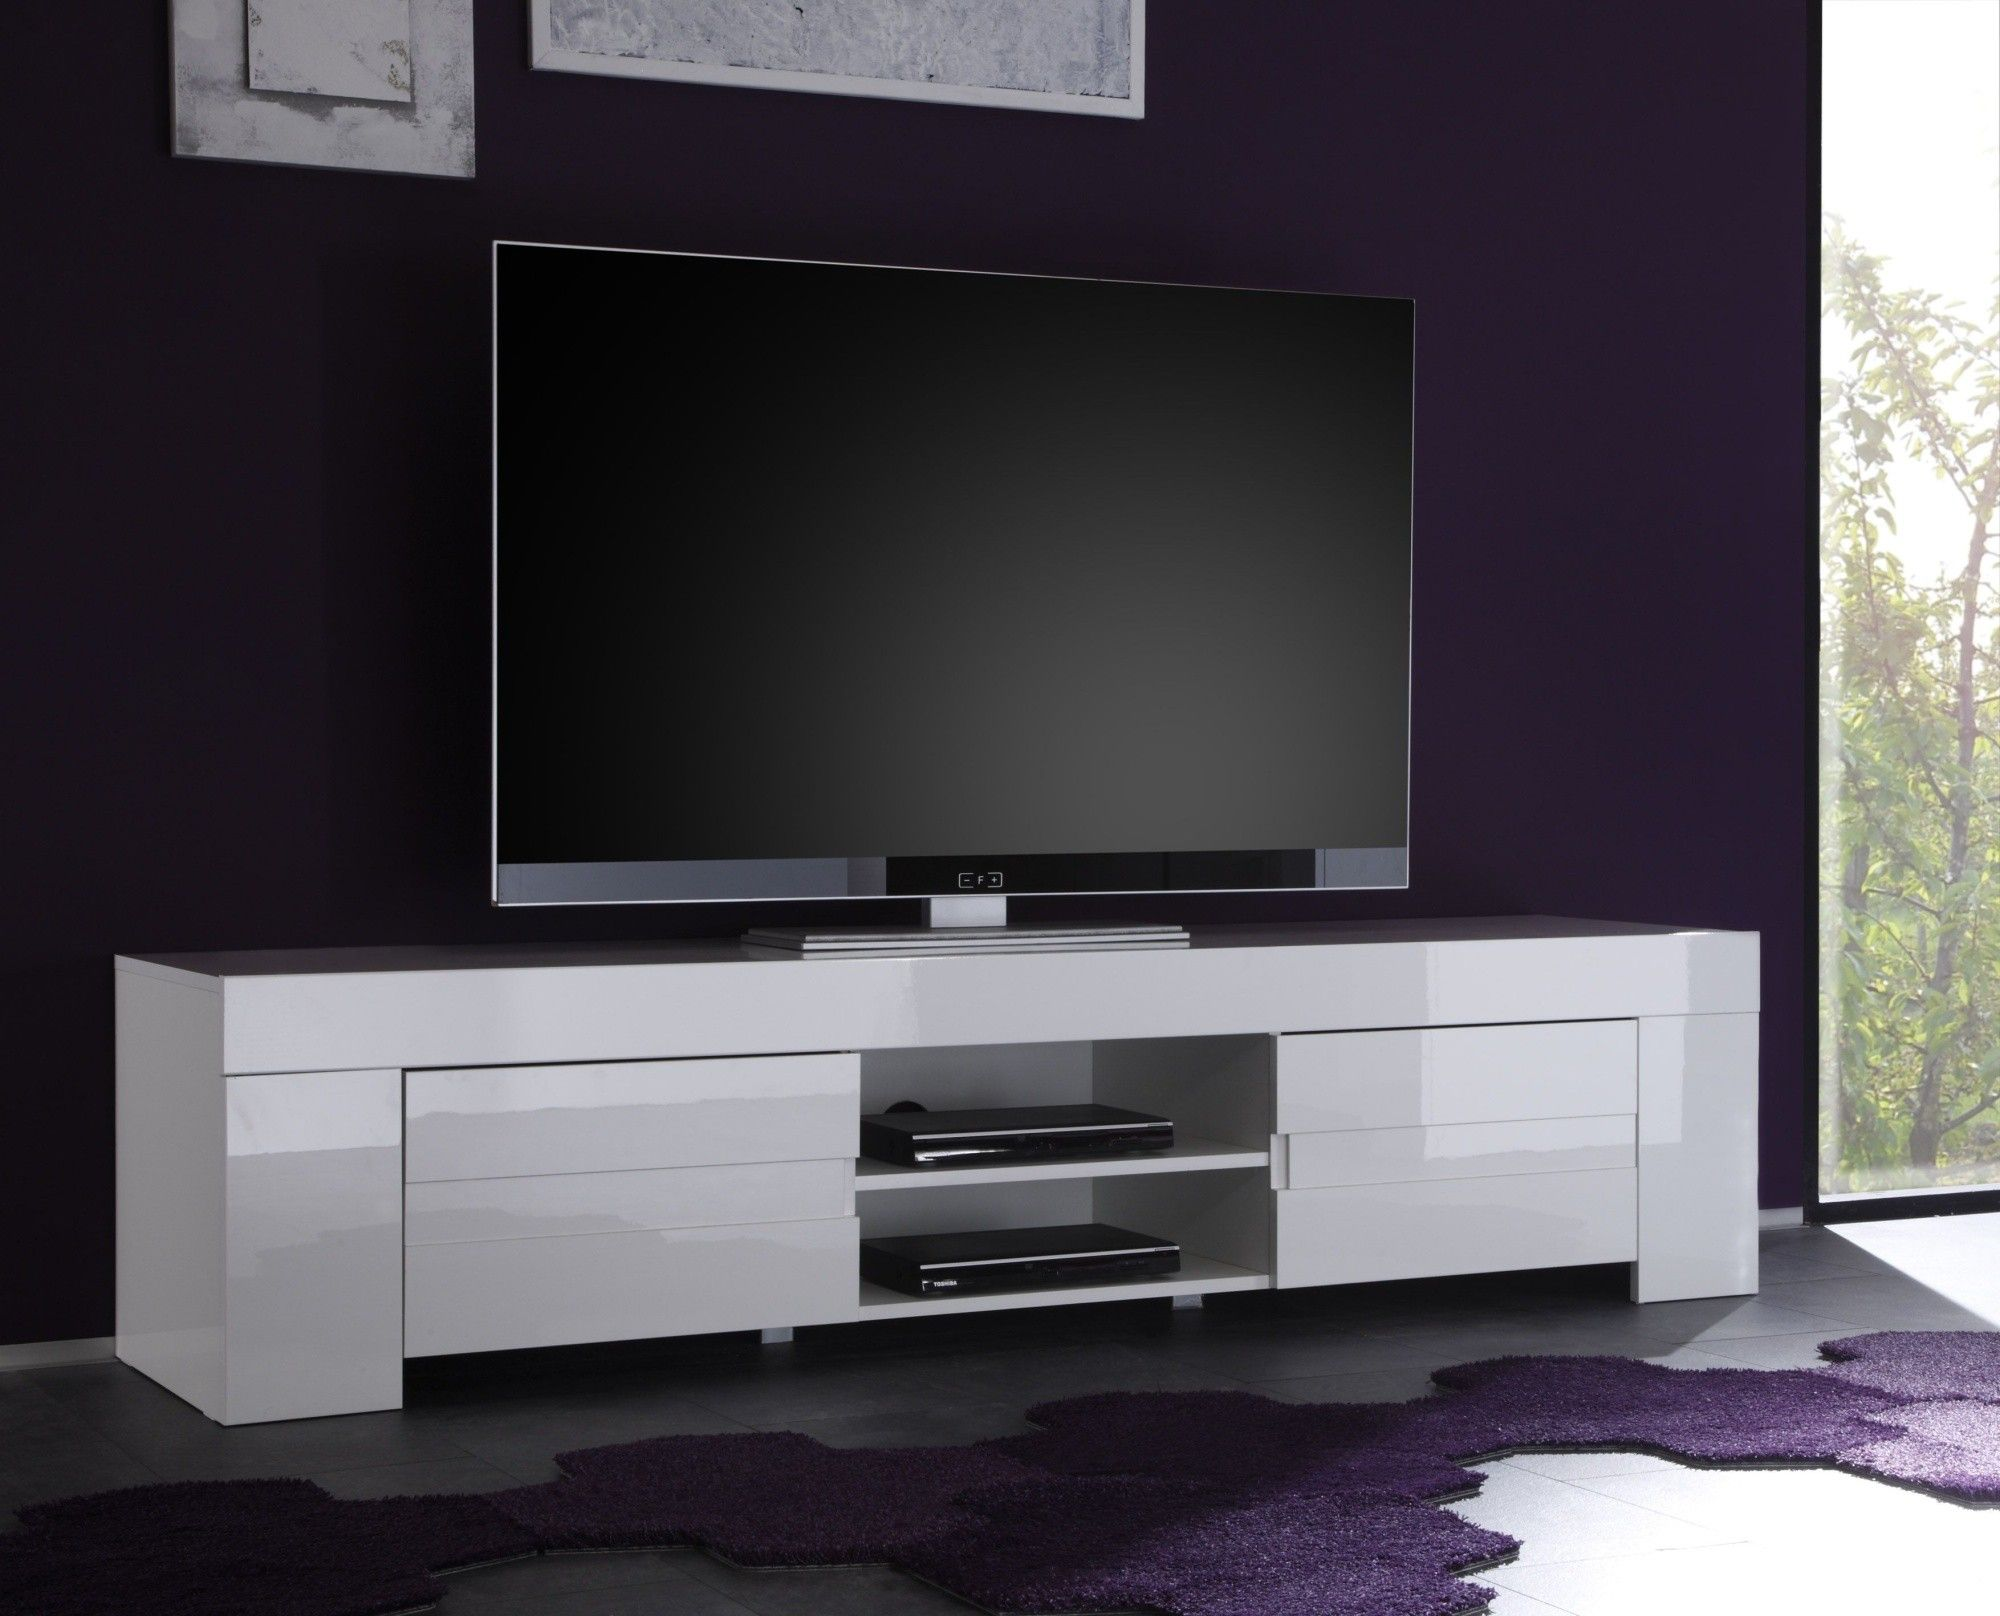 Meuble Tv Laque Pas Cher - Magnifique Meuble Tv Design Pas Cher Blanc Am Nag Salon [mjhdah]http://www.beerandrail.com/wp-content/uploads/2018/02/meuble-tv-2m-long-luxury-trendsetter-of-meuble-tv-2m-long.jpg